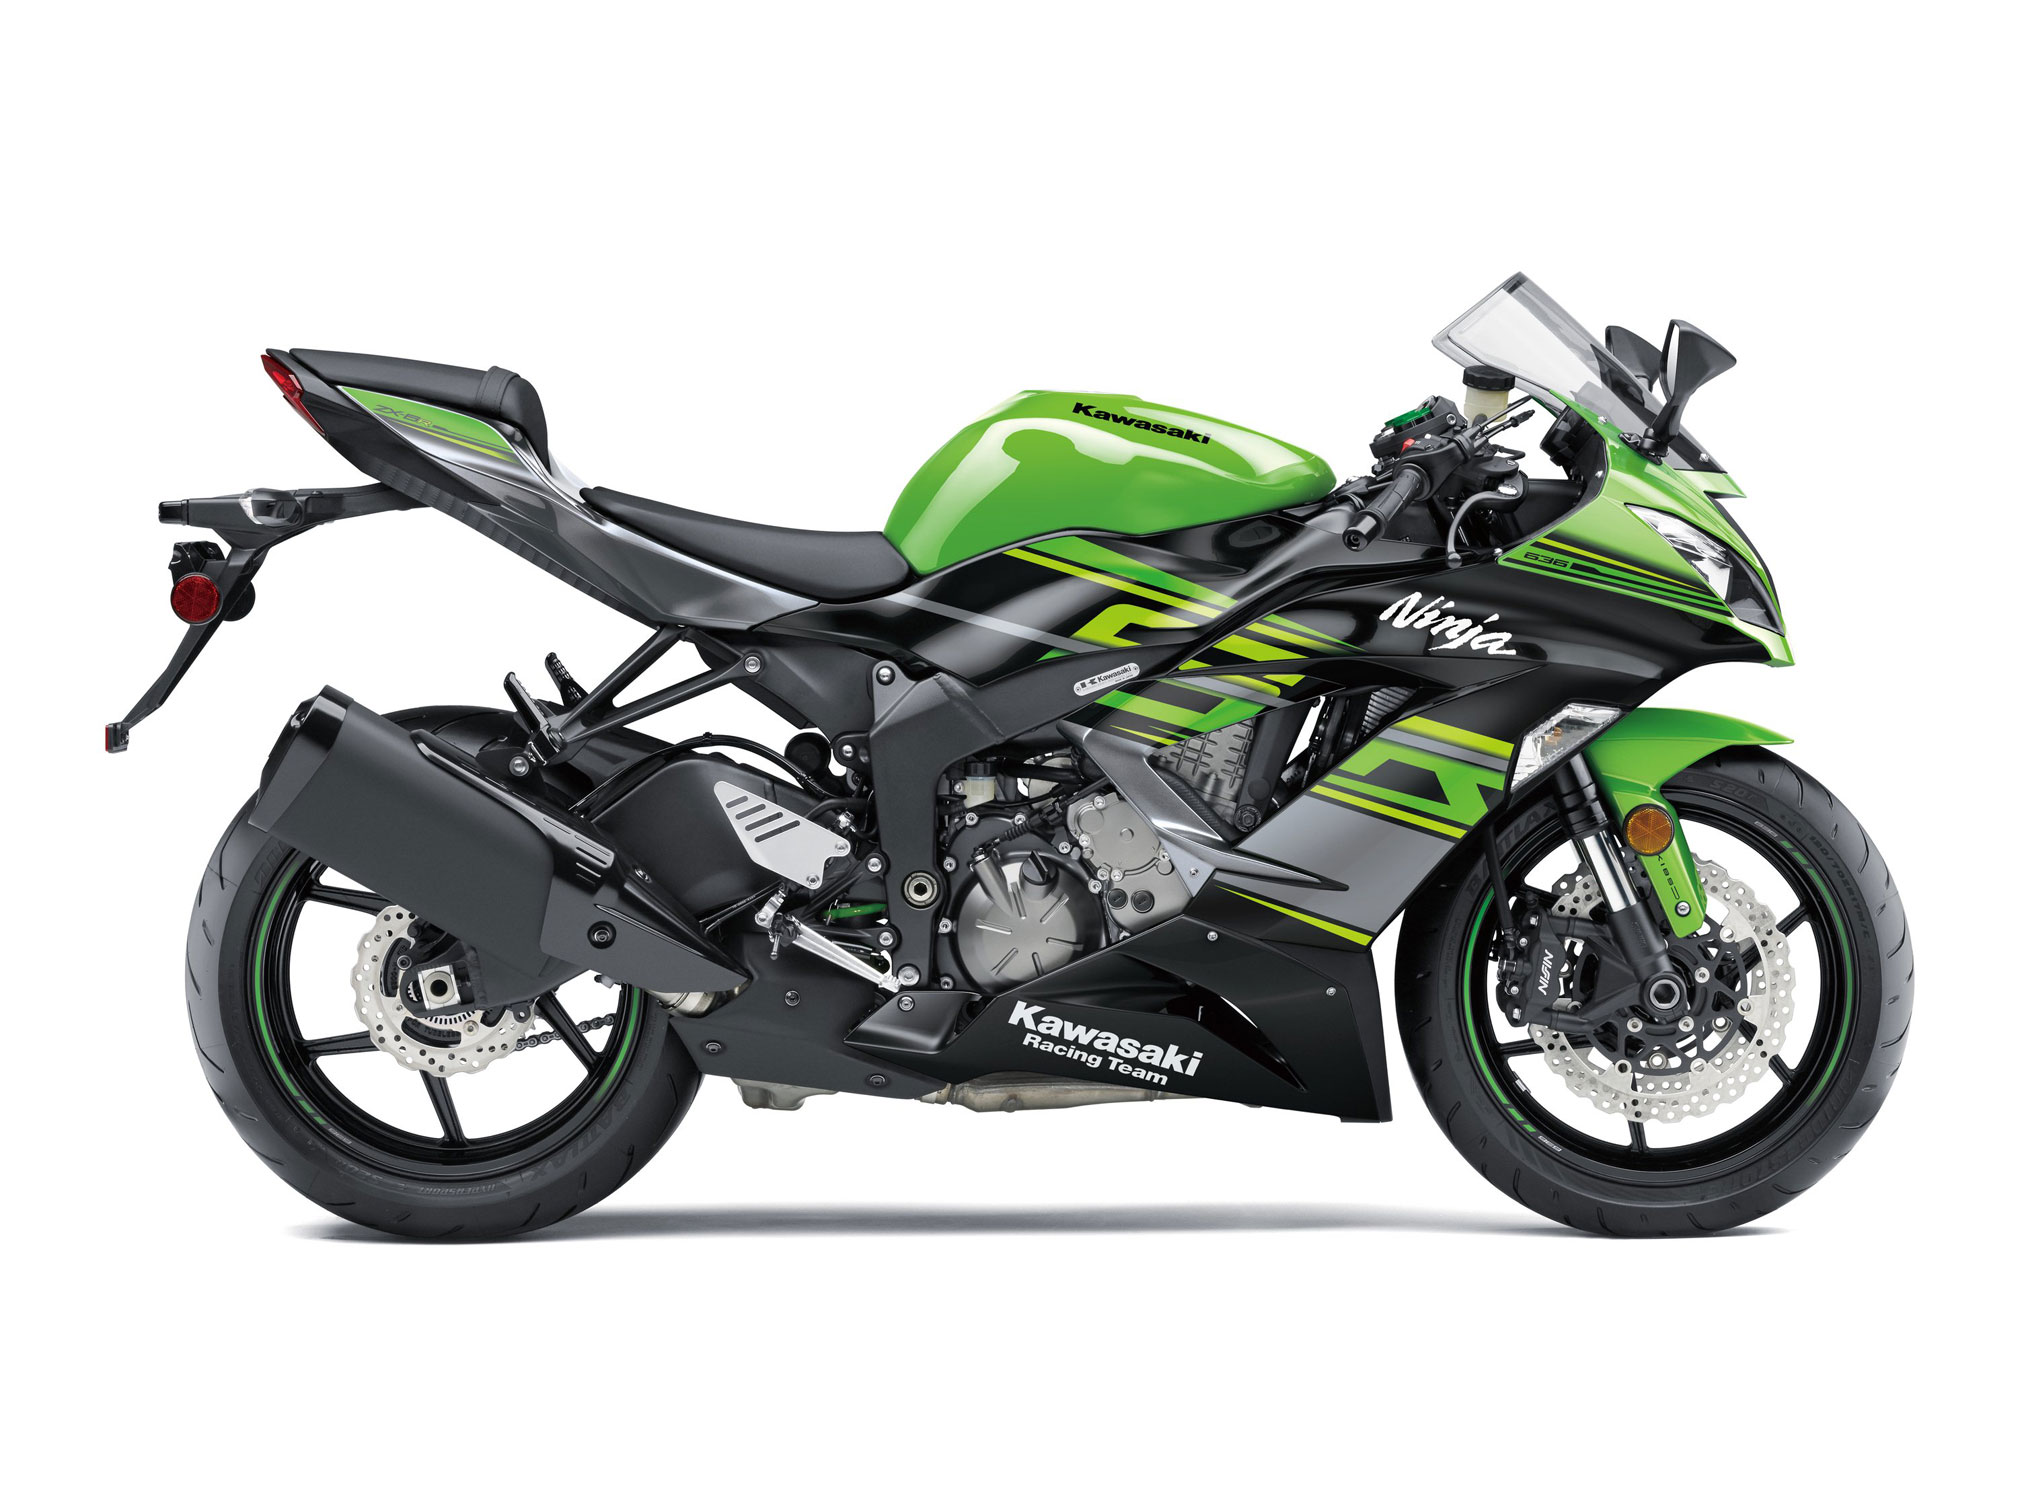 2018 kawasaki ninja zx 6r abs krt review total motorcycle. Black Bedroom Furniture Sets. Home Design Ideas